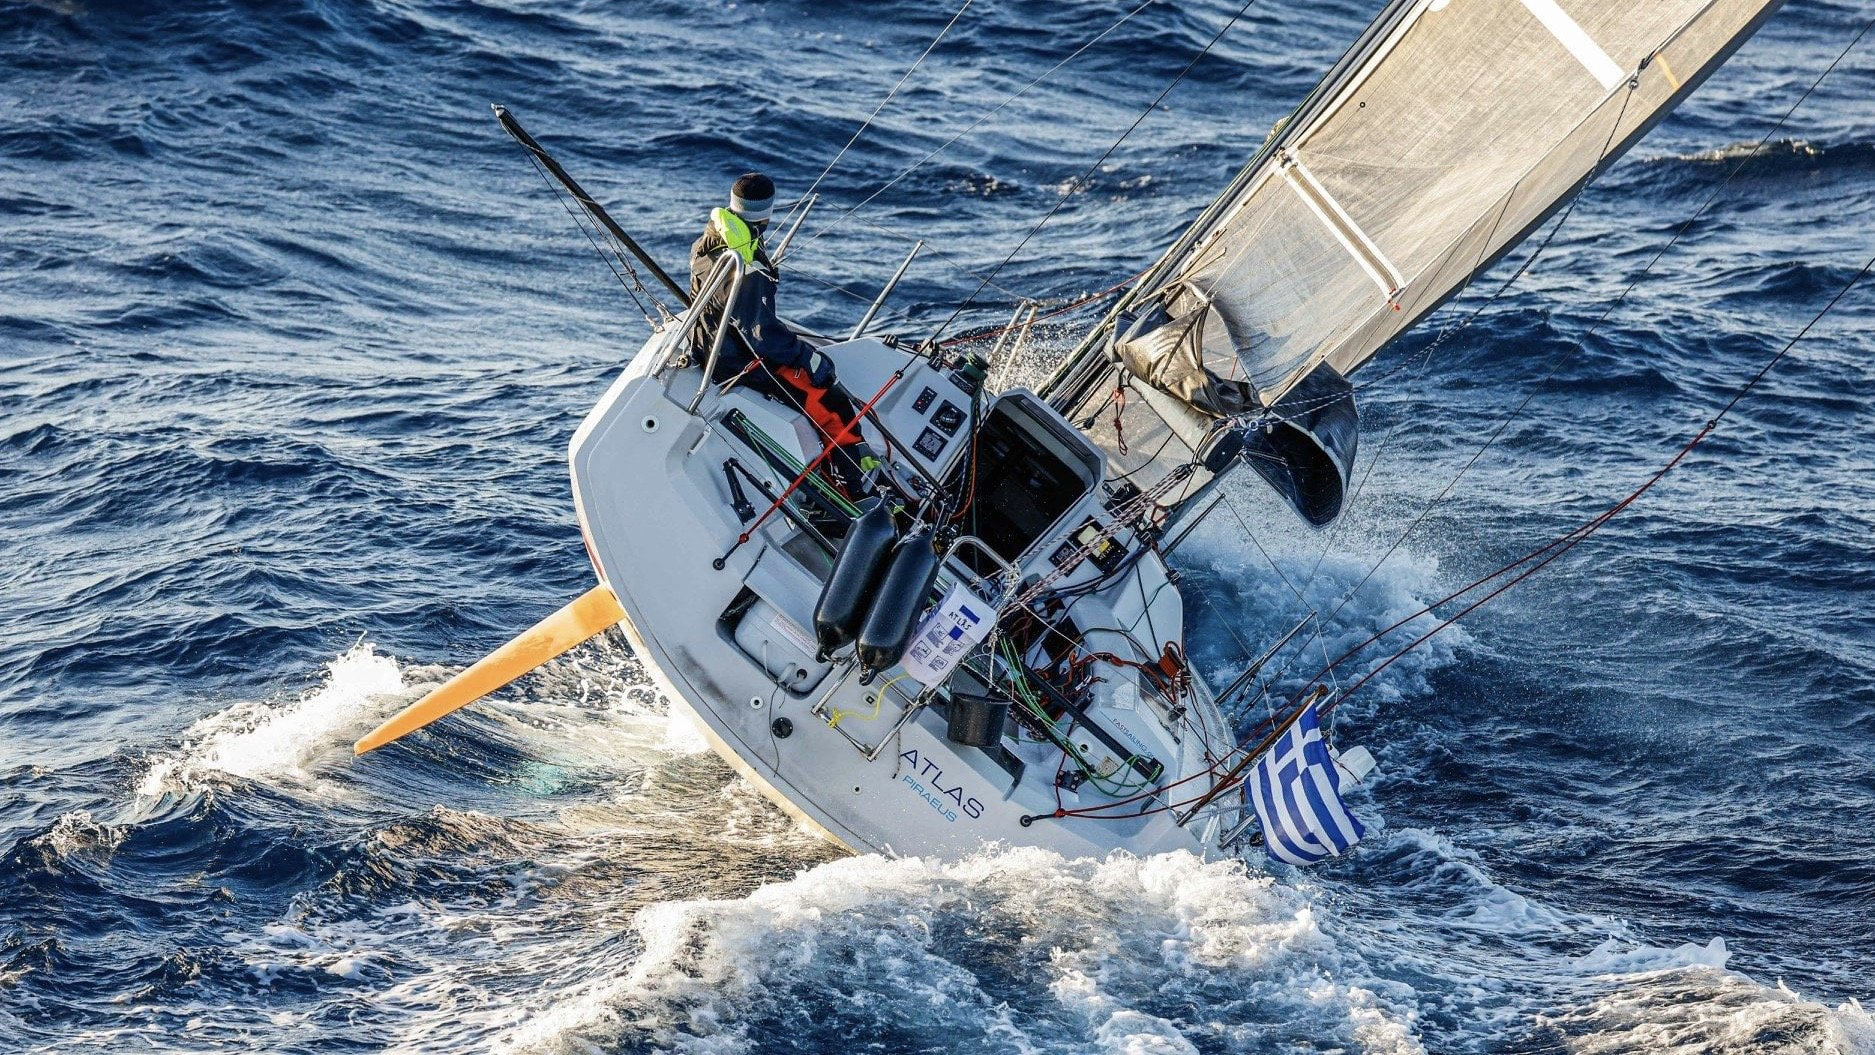 Dehler 30 one design racing in Greece